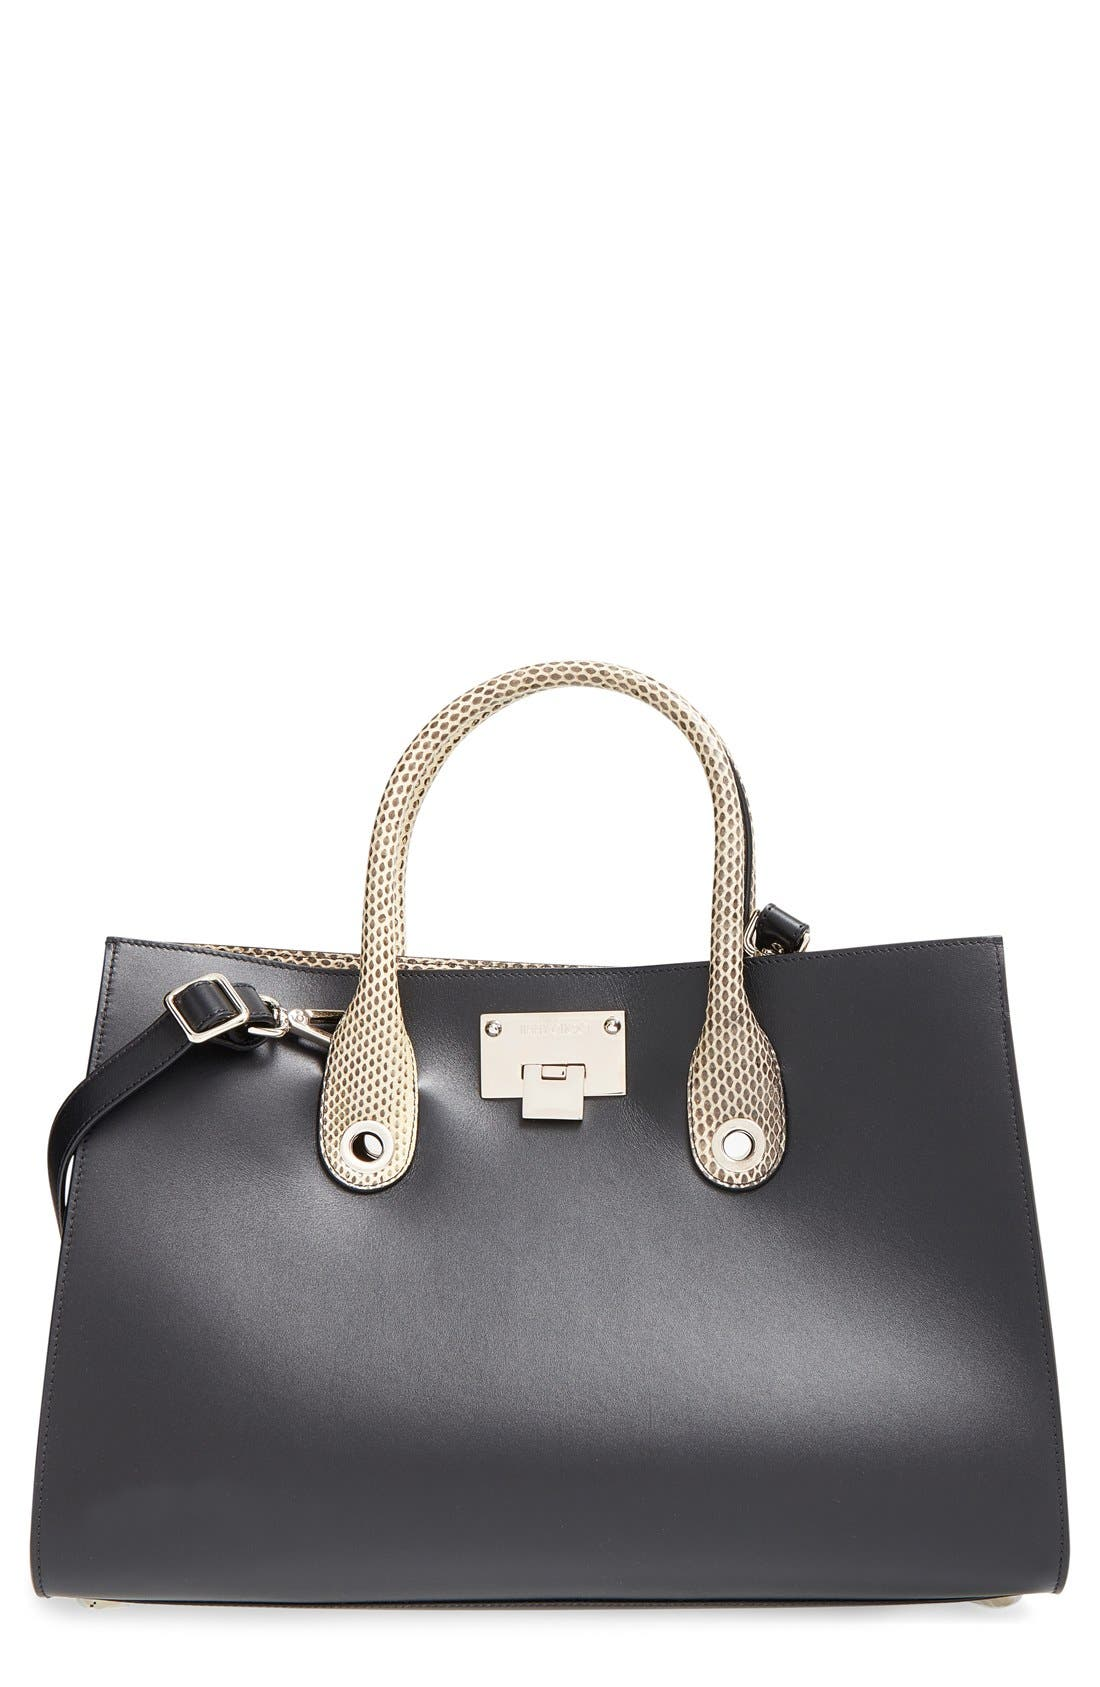 Alternate Image 1 Selected - Jimmy Choo 'Riley' Leather Tote